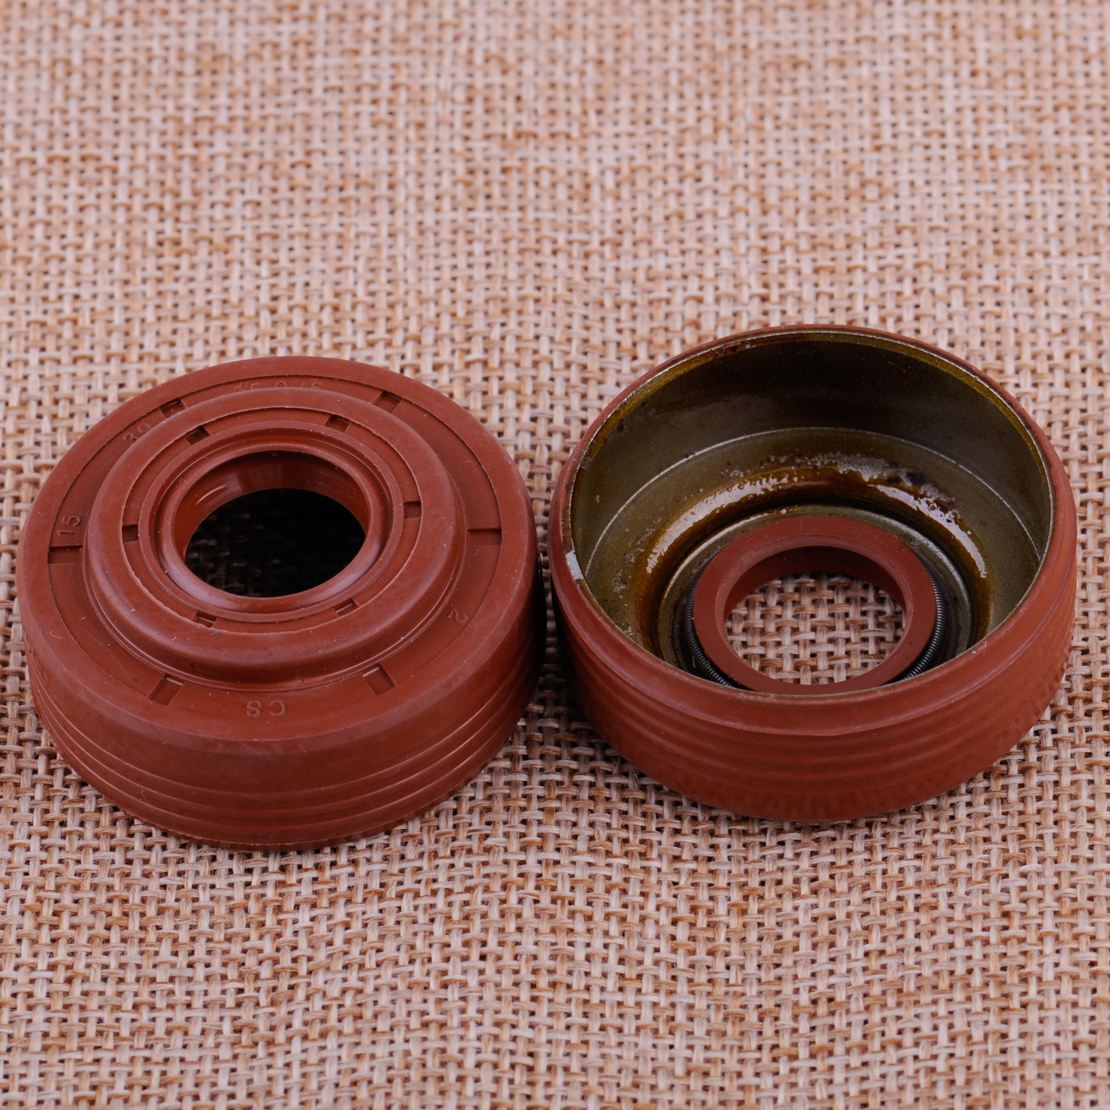 LETAOSK New 2pcs Oil Seal Set Fit For HUSQVARNA 340 345 346XP 350 Chainsaw 503 93 23 02